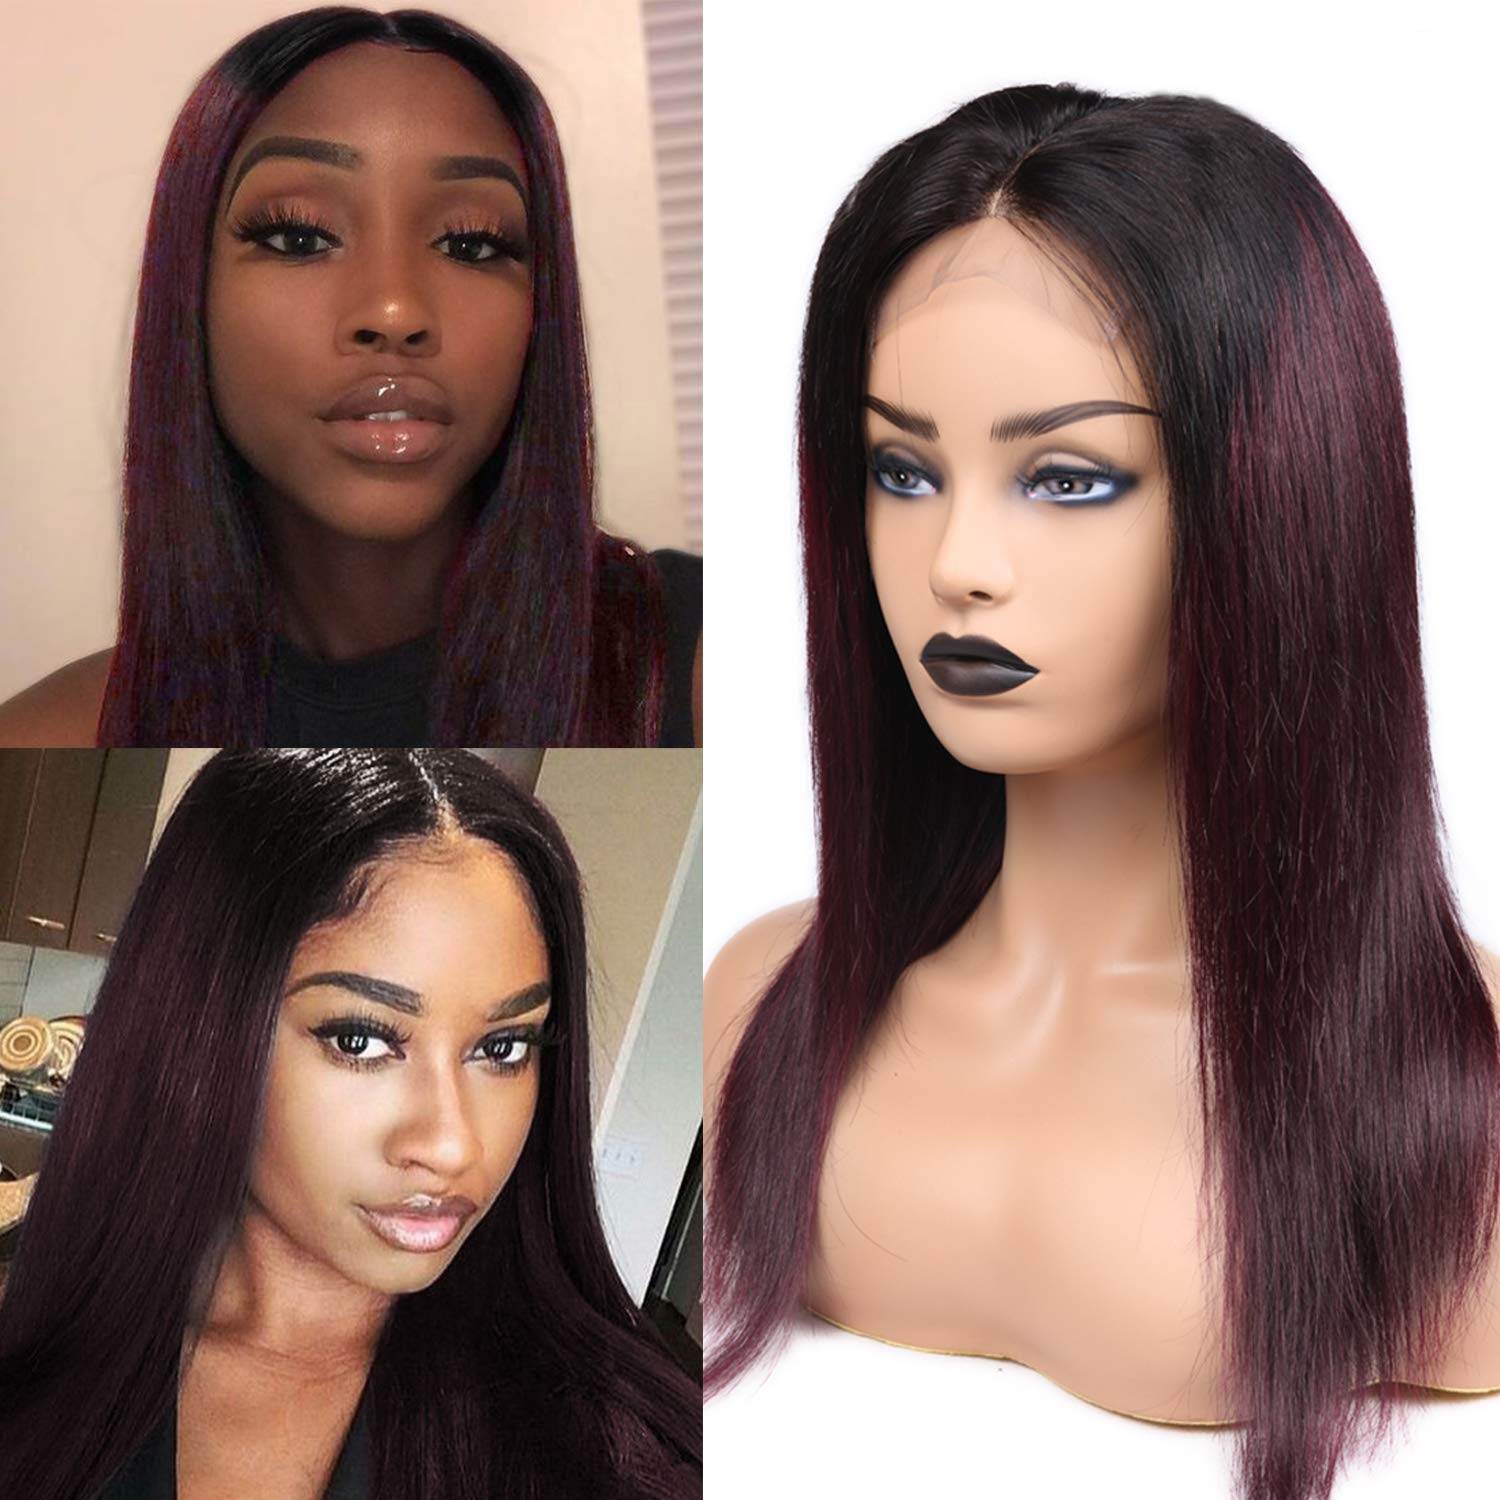 HANNE 4*4 Lace Closure Wigs #1B/#99J Ombre Remy Human Hair Wigs With Baby Hair Straight 150% Density Brazilian Hair Wig In Stock